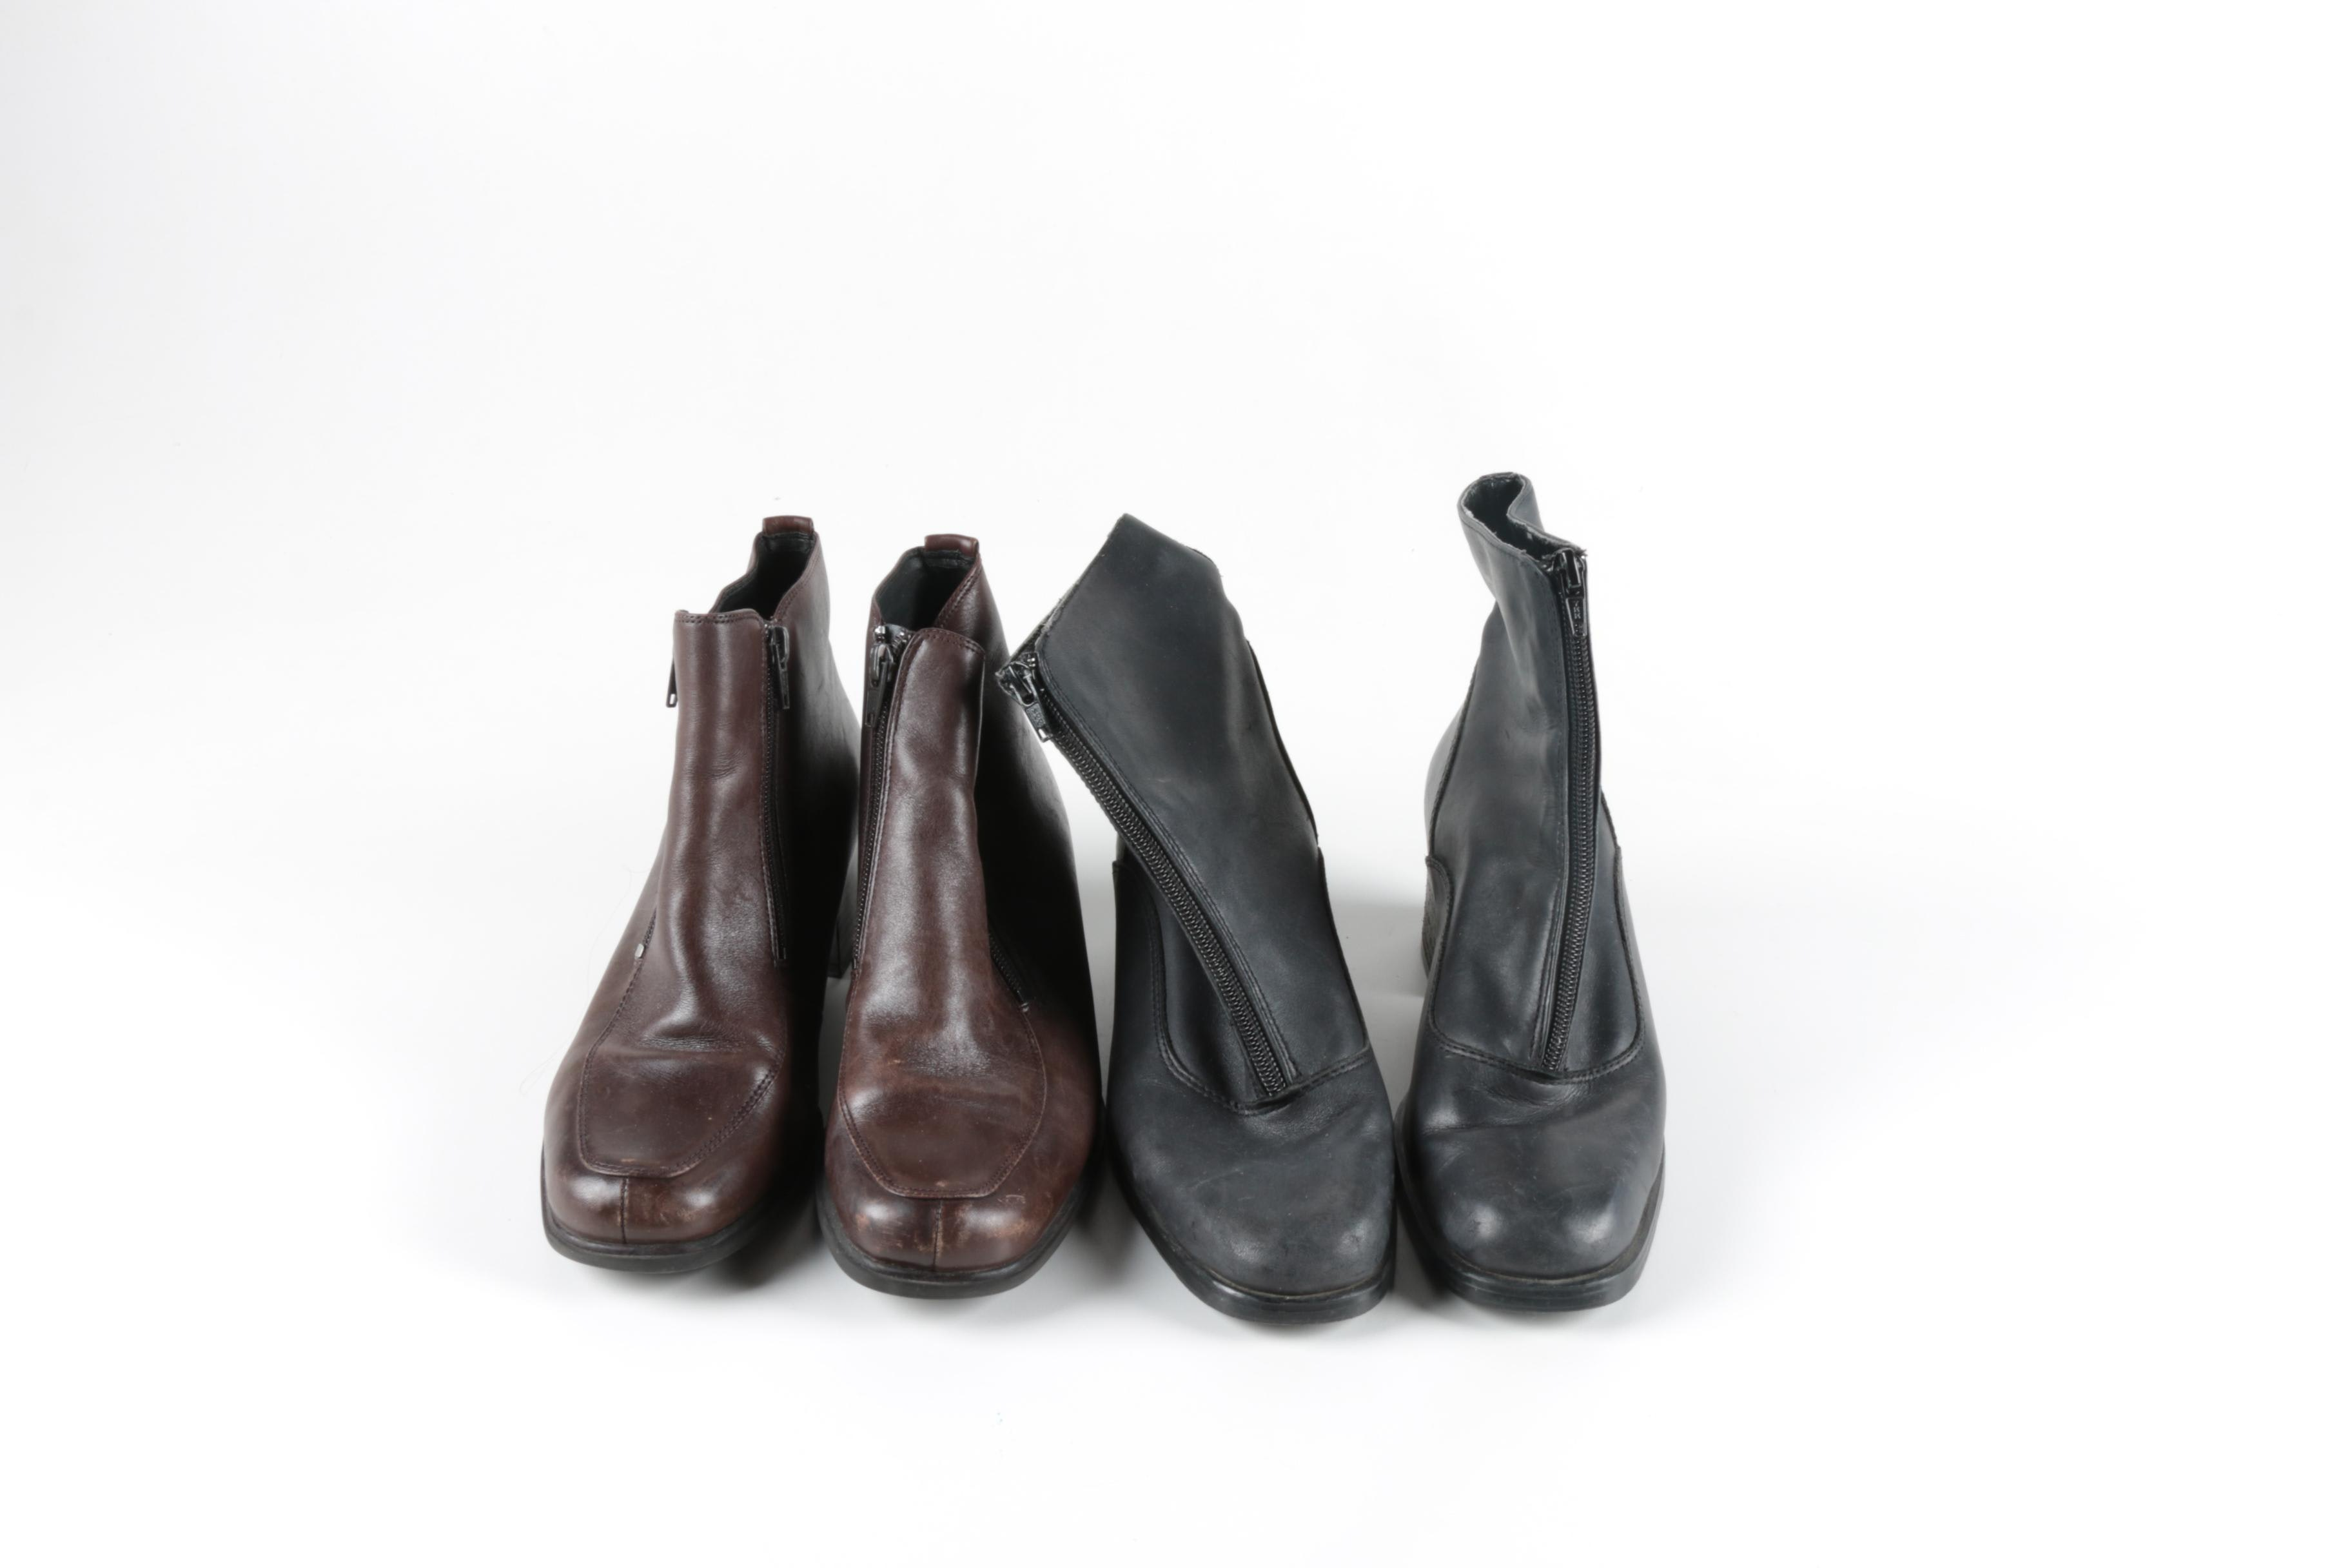 Two Pairs of Women's Leather Boots